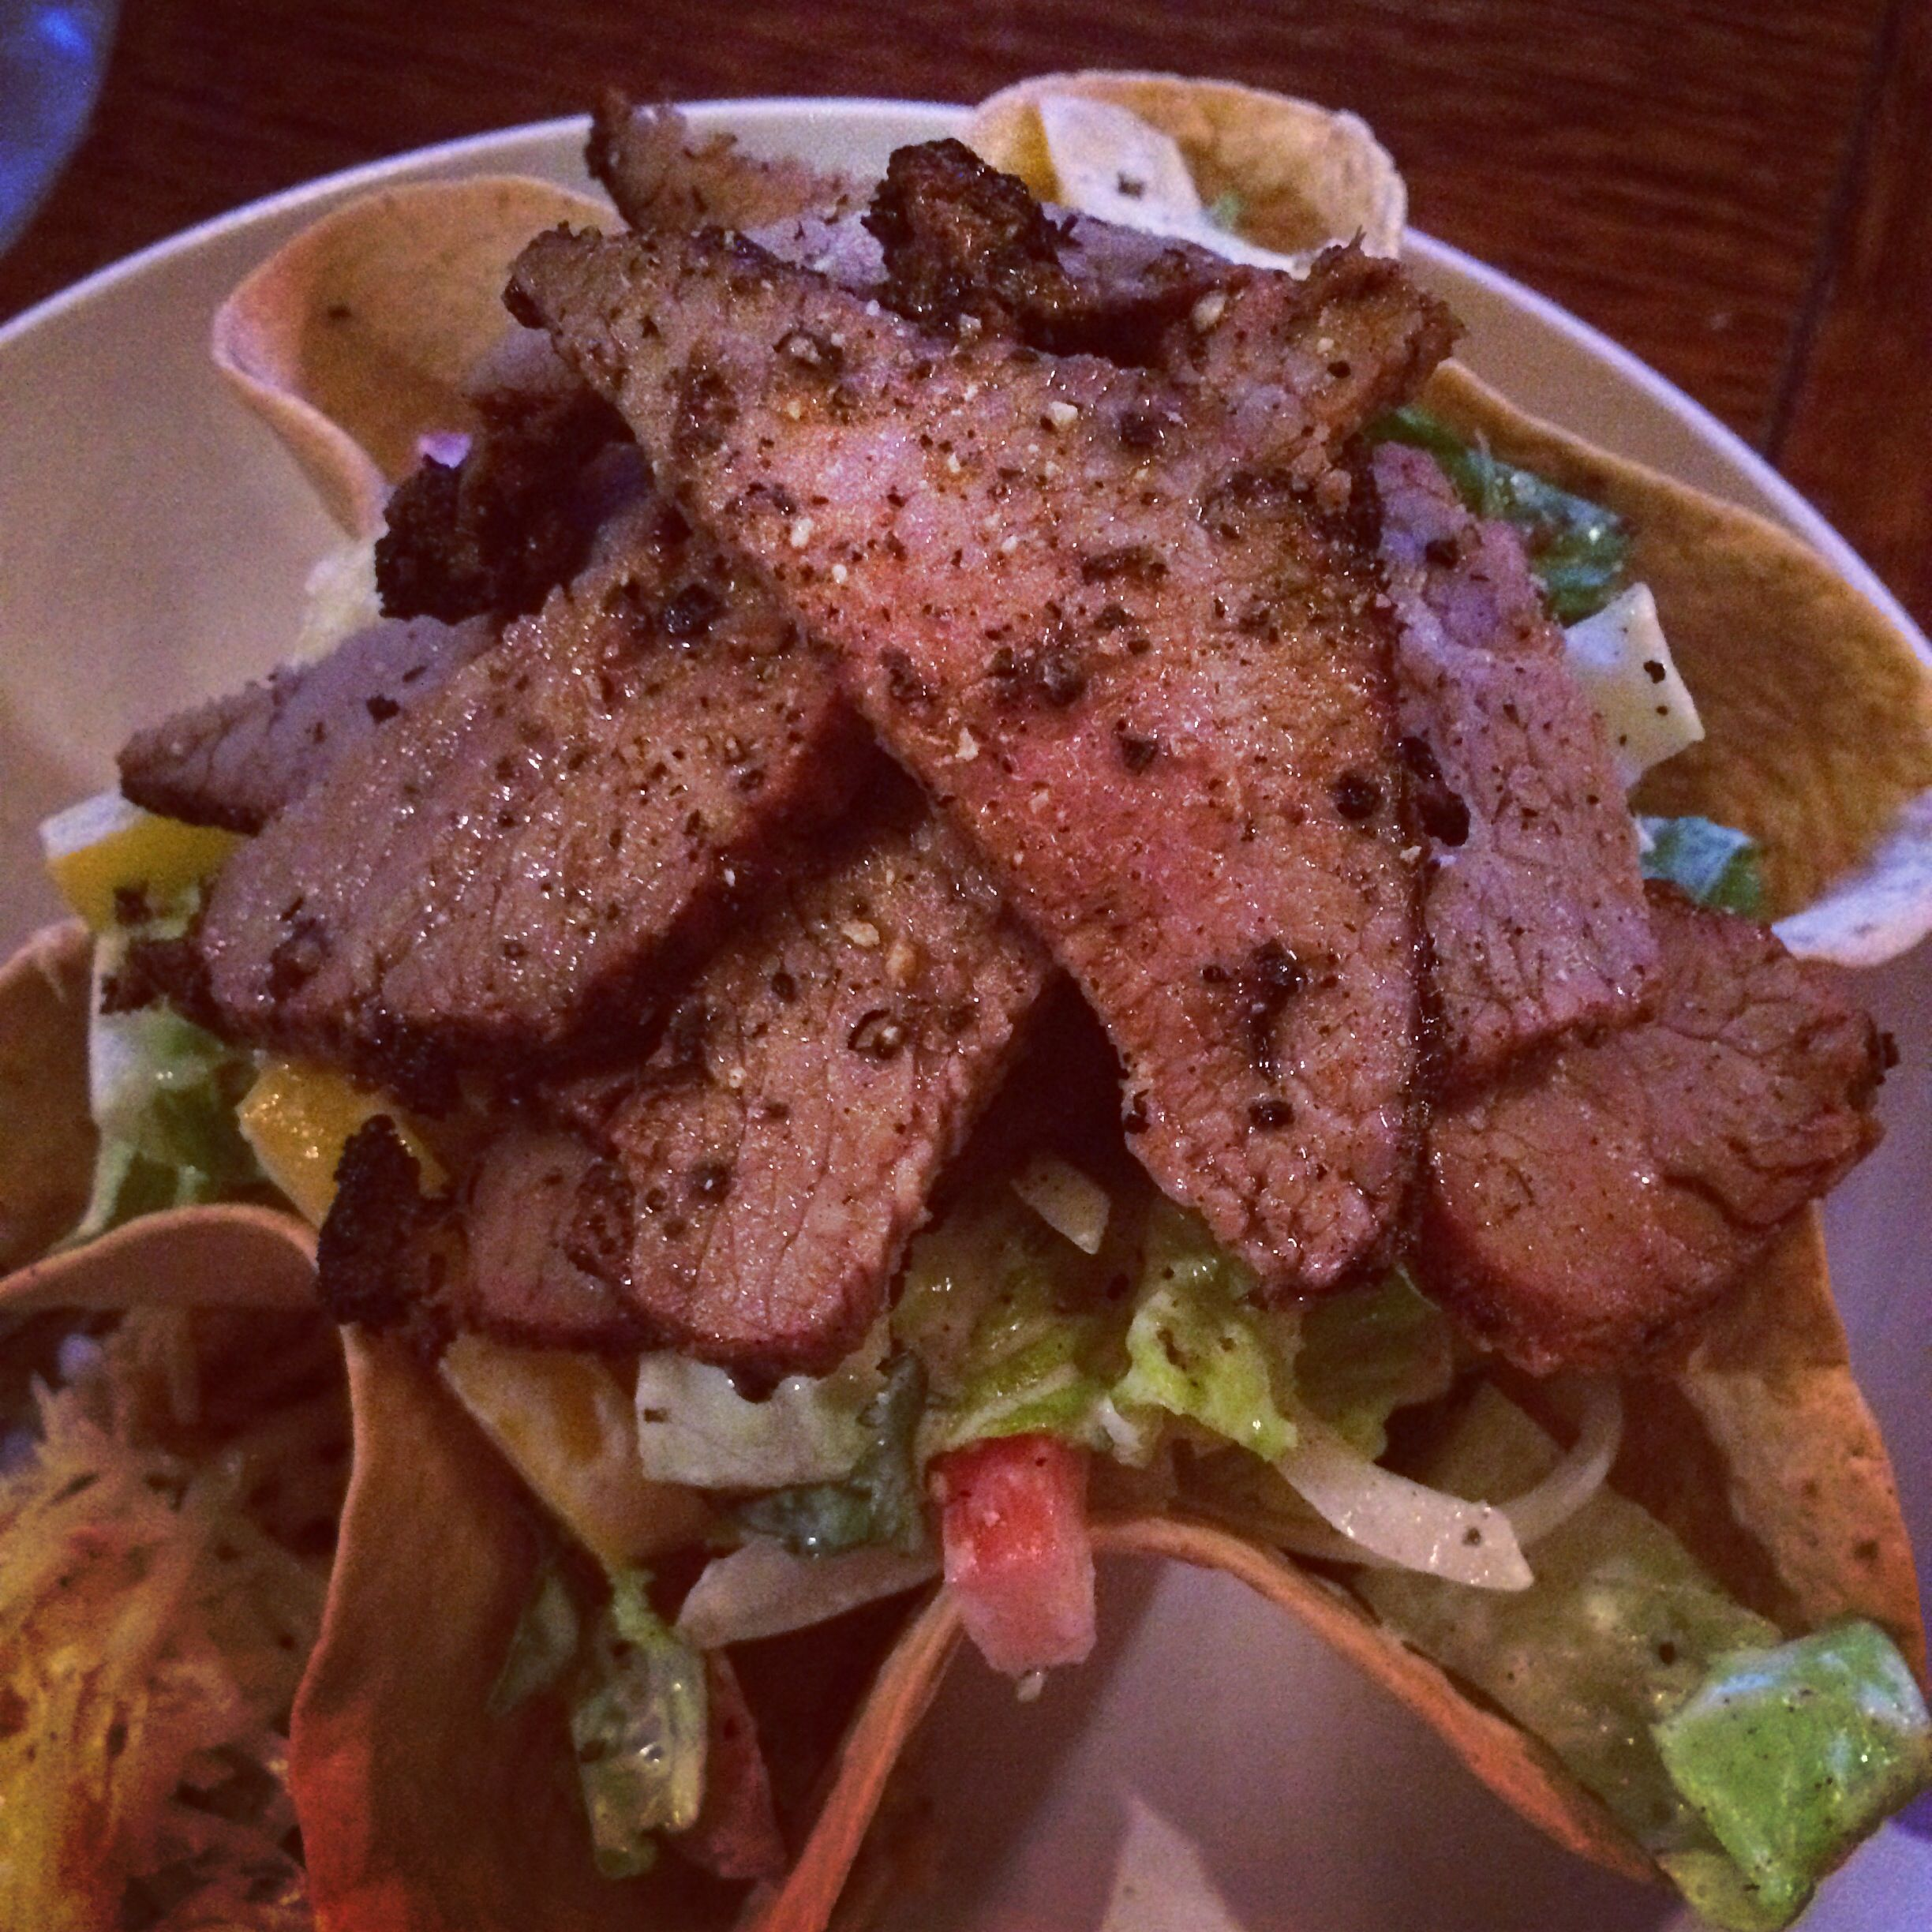 Steak Tostada with a Cilantro and Lime Crema dressing